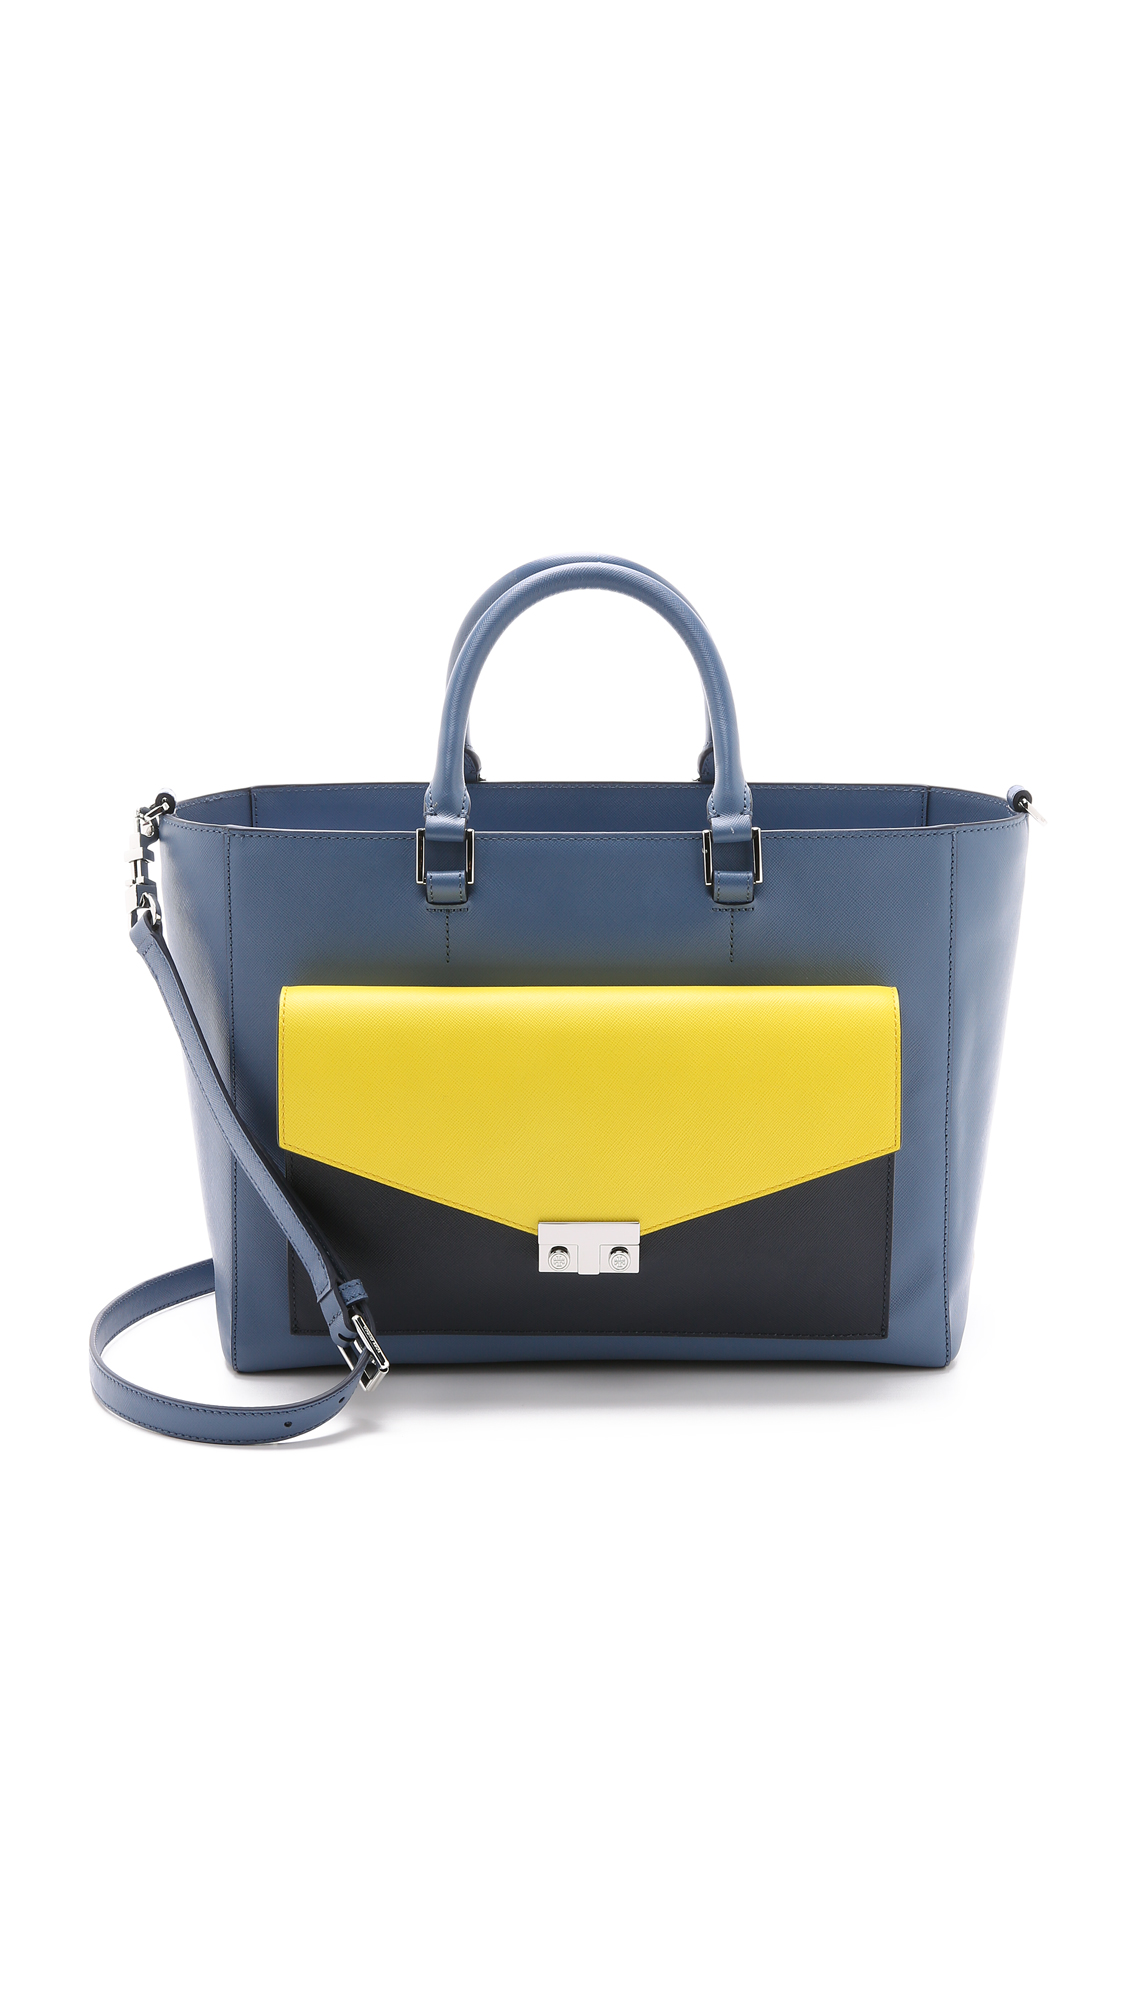 291d79aa9c59 Tory Burch T Lock Colorblock East   West Tote